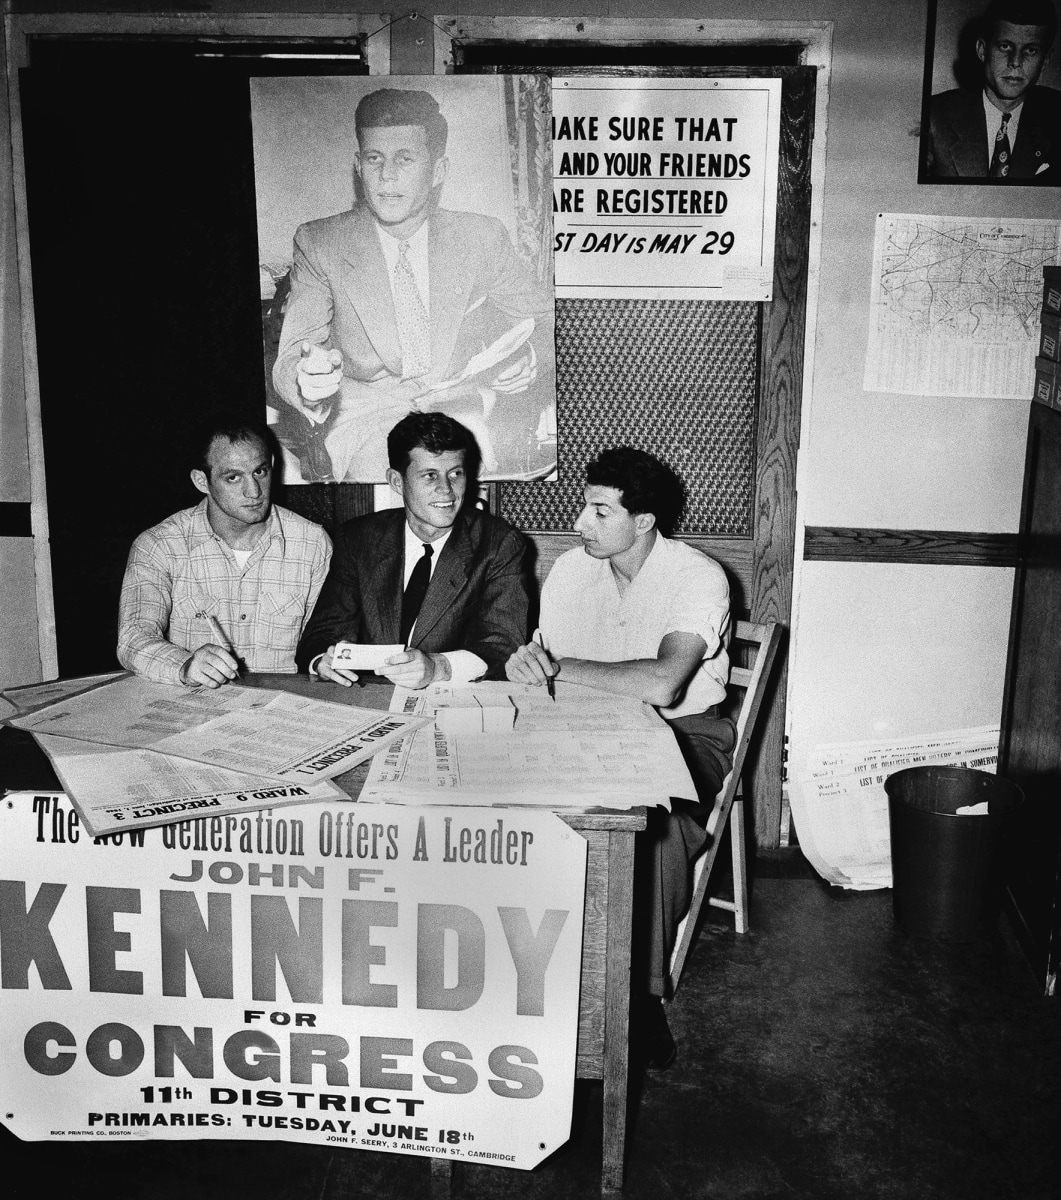 a review of the political career of john f kennedy As a young journalist seven decades ago, john f kennedy  john f kennedy  diary reveals shift from journalist to budding politician.